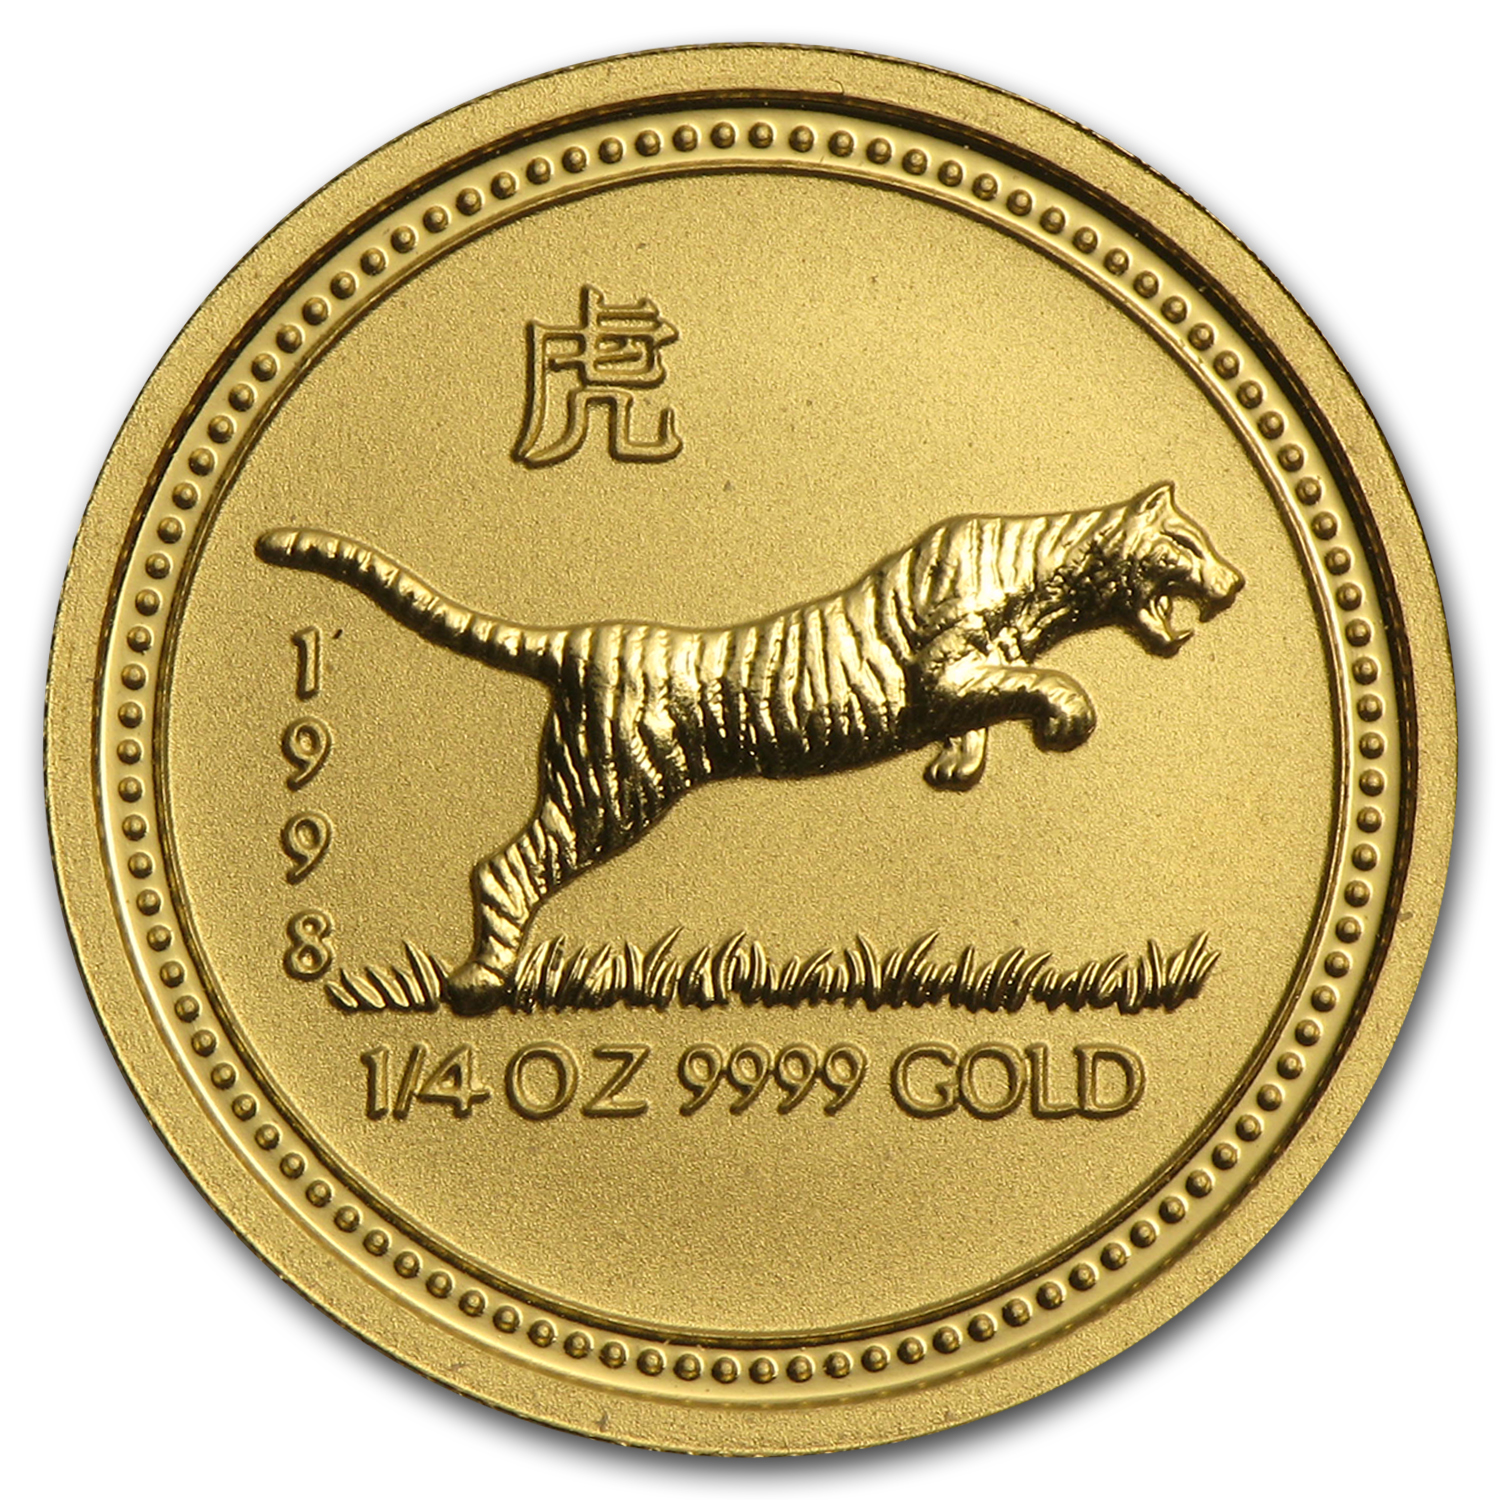 1998 1/4 oz Gold Year of the Tiger Lunar Coin (Series I)